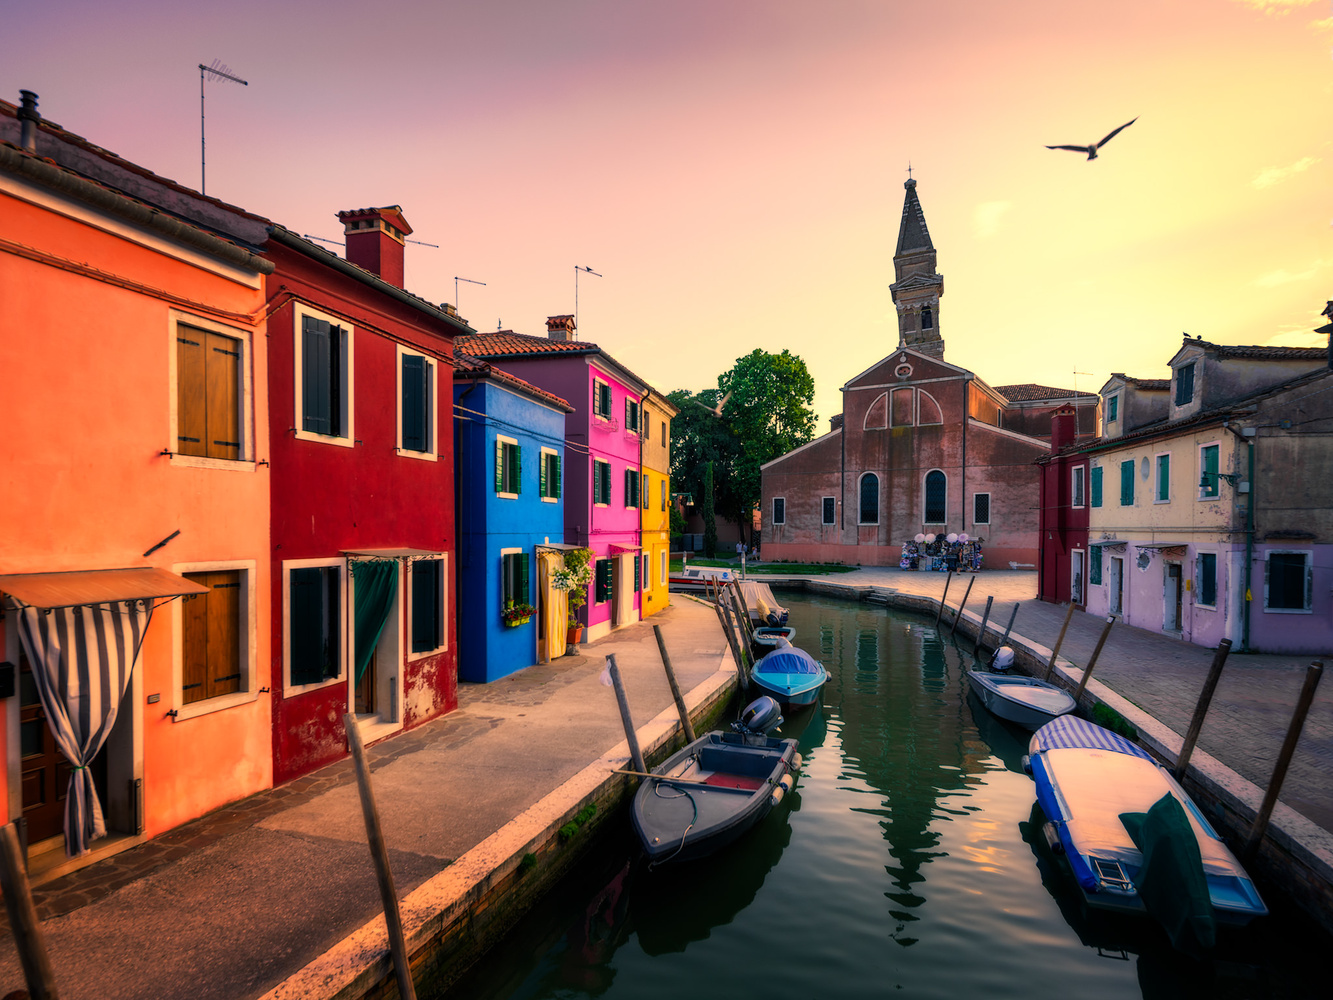 Burano and San Martino with the Leaning Tower | Venice, Italy by Nico Trinkhaus